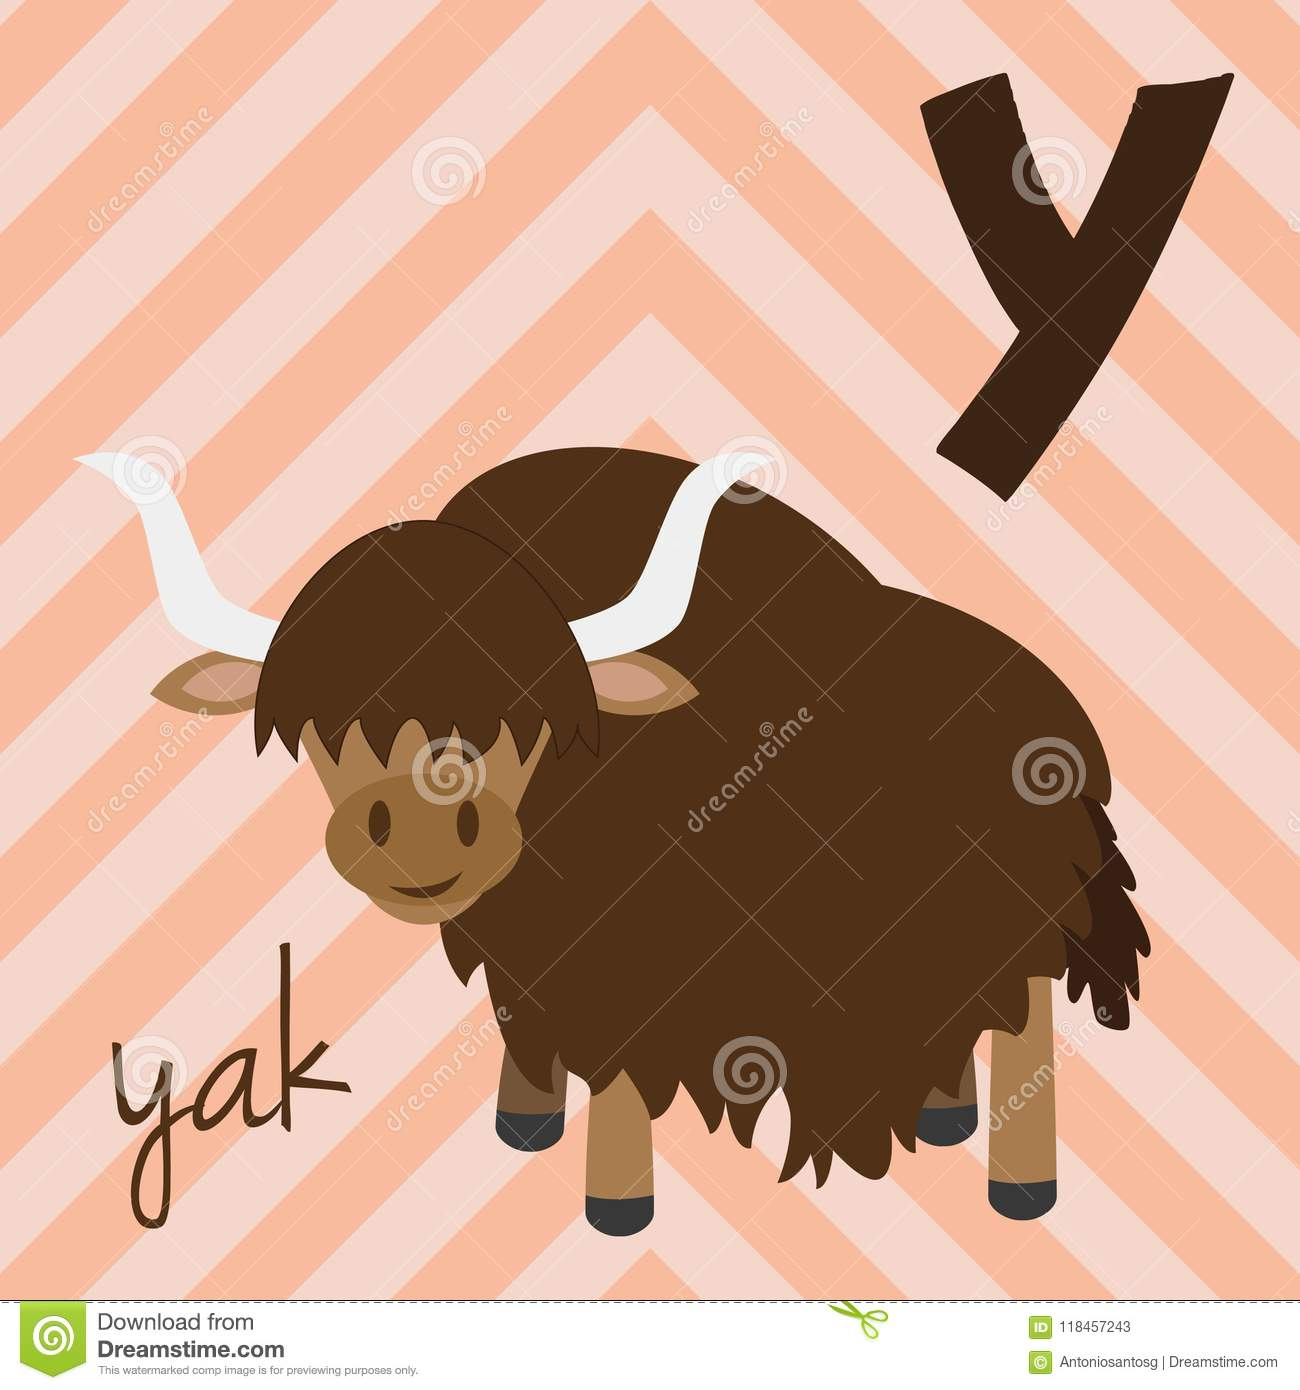 Cute cartoon zoo illustrated alphabet with funny animals. Spanish alphabet: Y for Yak.